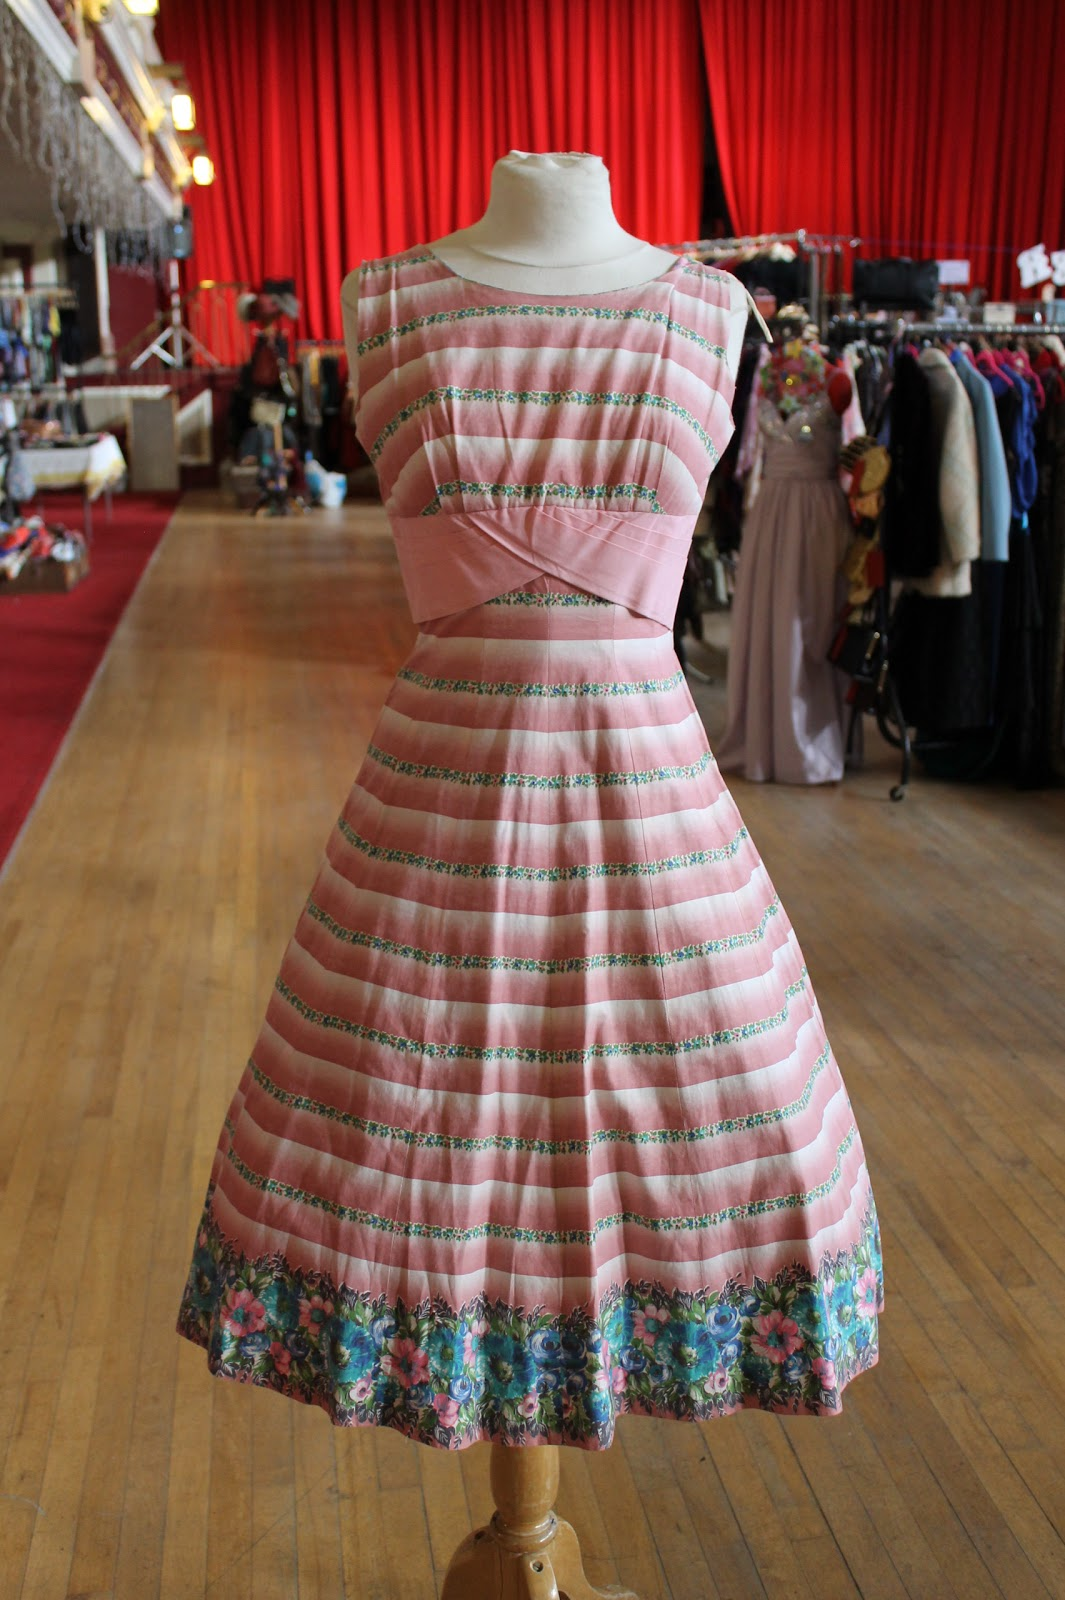 1950s dating dress Think you got what it takes to write for cracked clothes for the boys and pink frilly dresses for the community of note has a dating site aspect to.